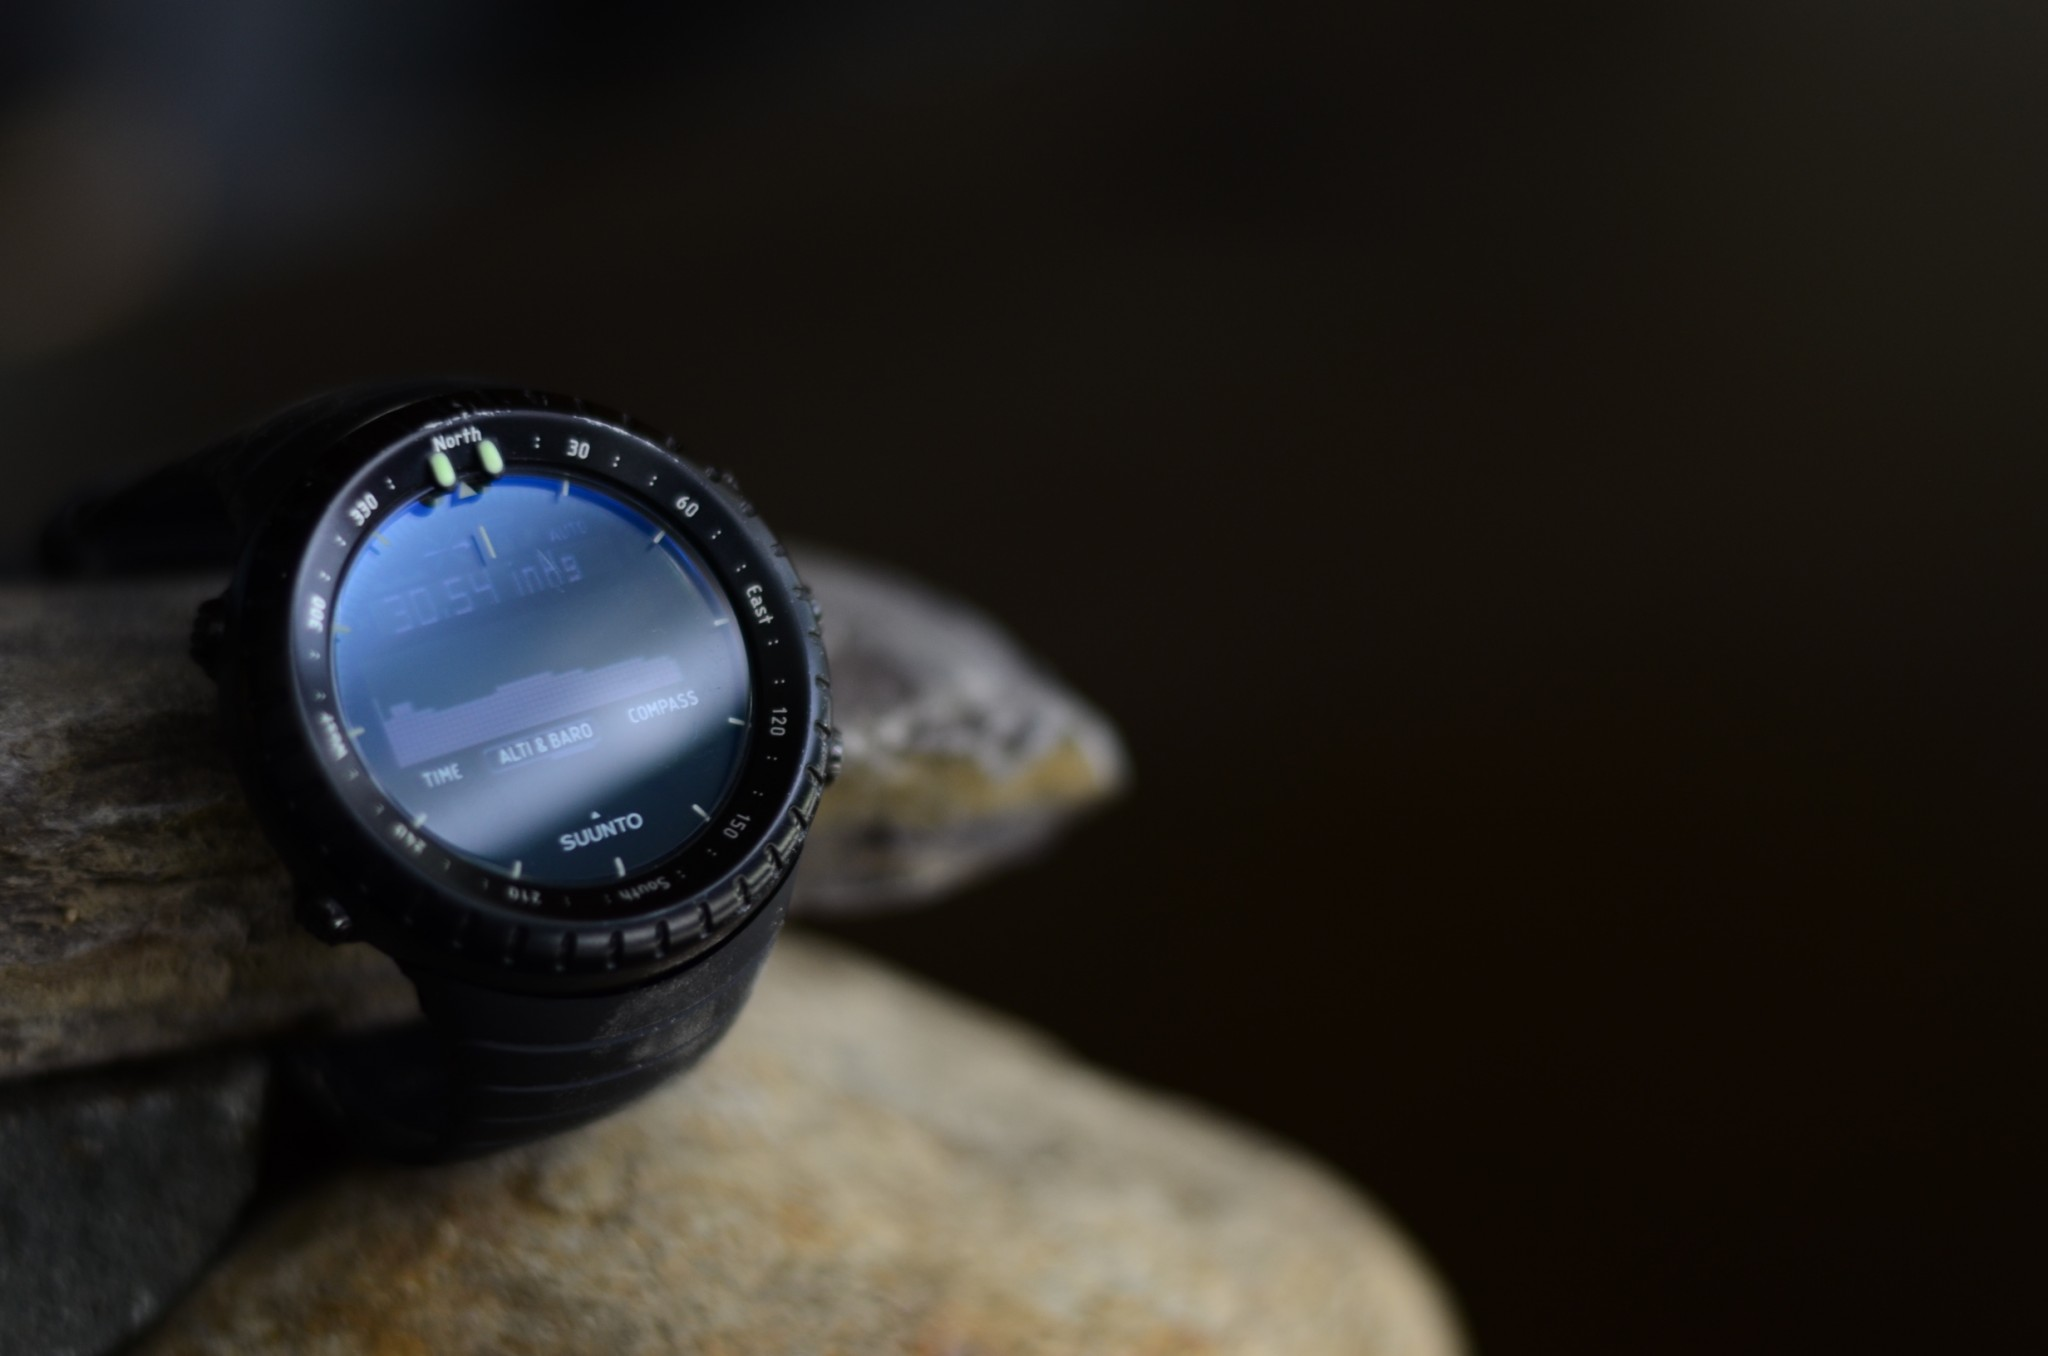 outdoors photo feedthehabit suunto review all abc altimeter com watches black watch core